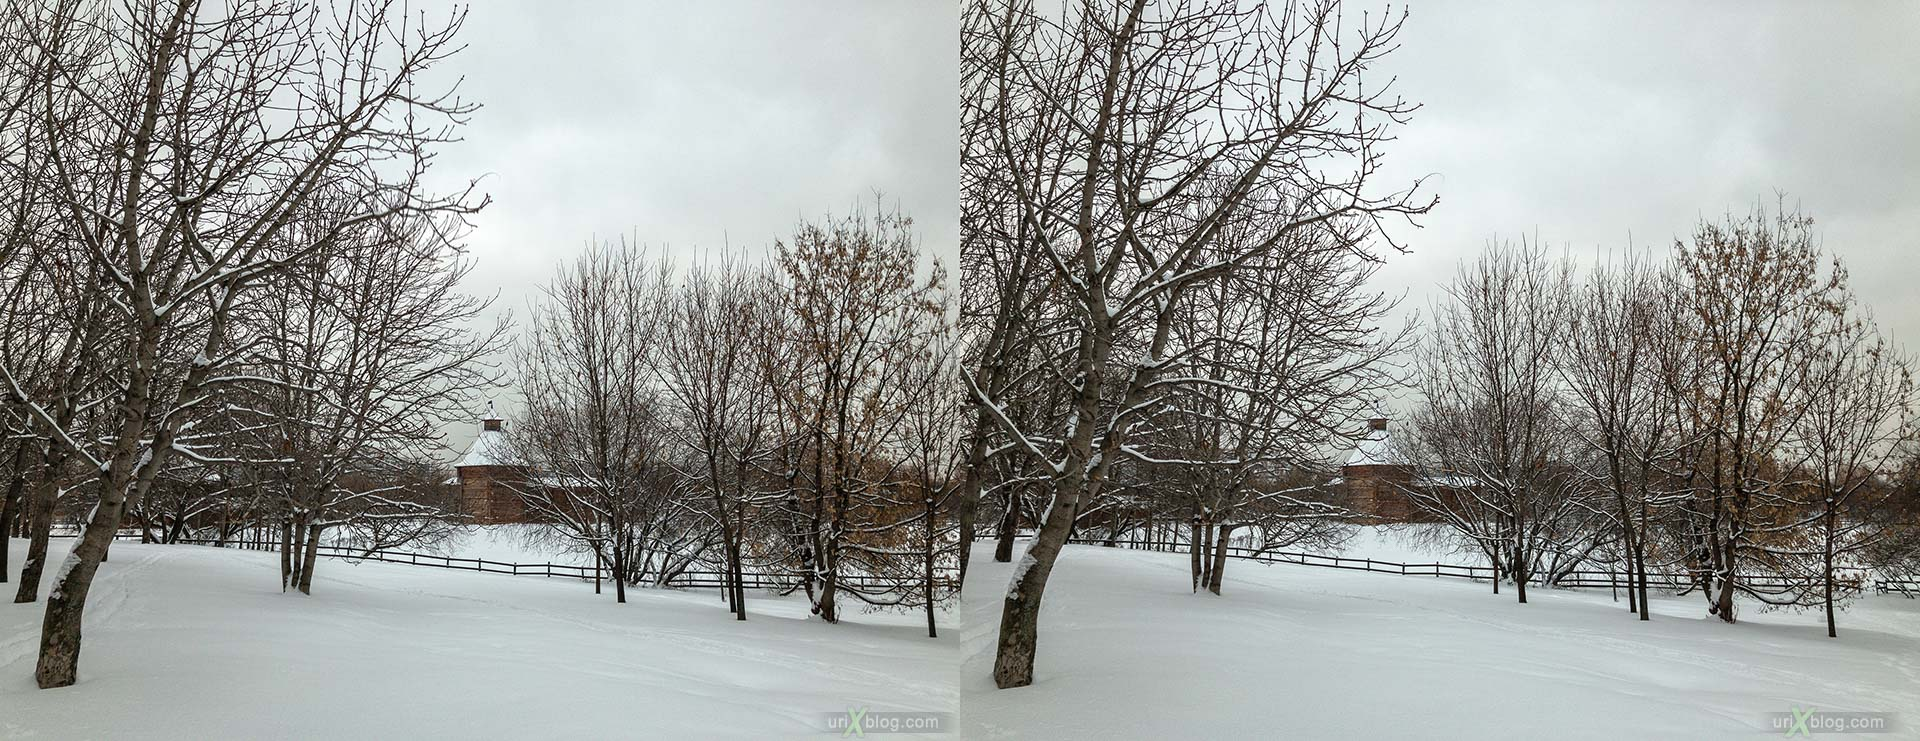 Russian Wooden Architecture, Mokhovaya (Moss) tower, Kolomenskoye, park, wooden building, winter, snow, Moscow, Russia, 3D, stereo pair, cross-eyed, crossview, cross view stereo pair, stereoscopic